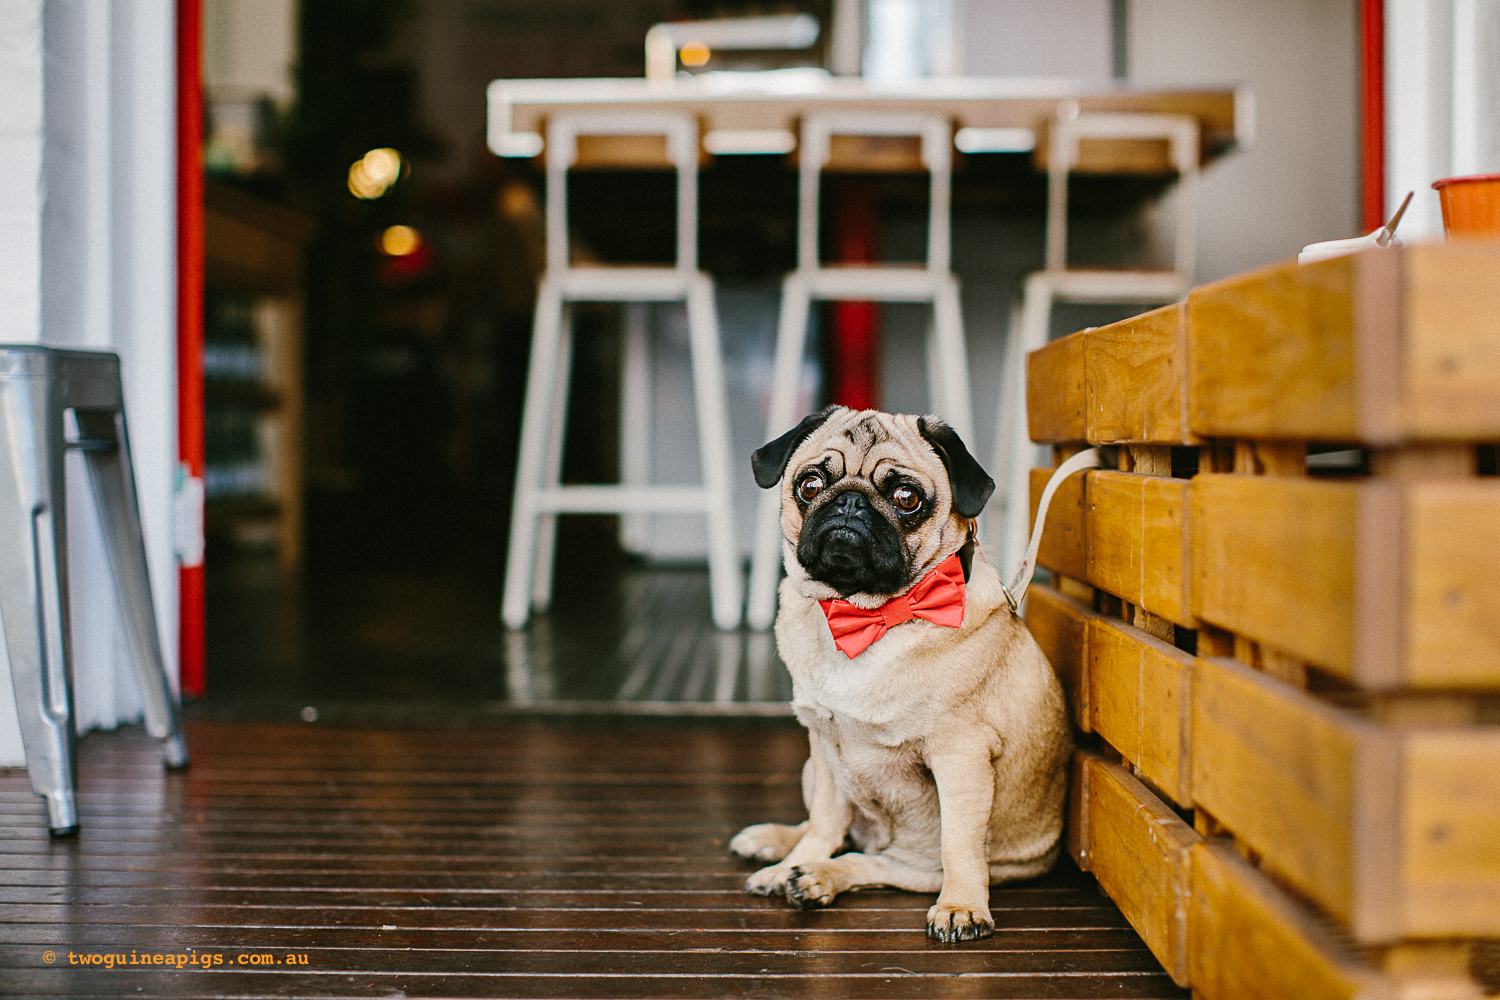 twoguineapigs_pet_photography_oh_jaffa_pug_glider_cafe_potts_point_1500-2.jpg